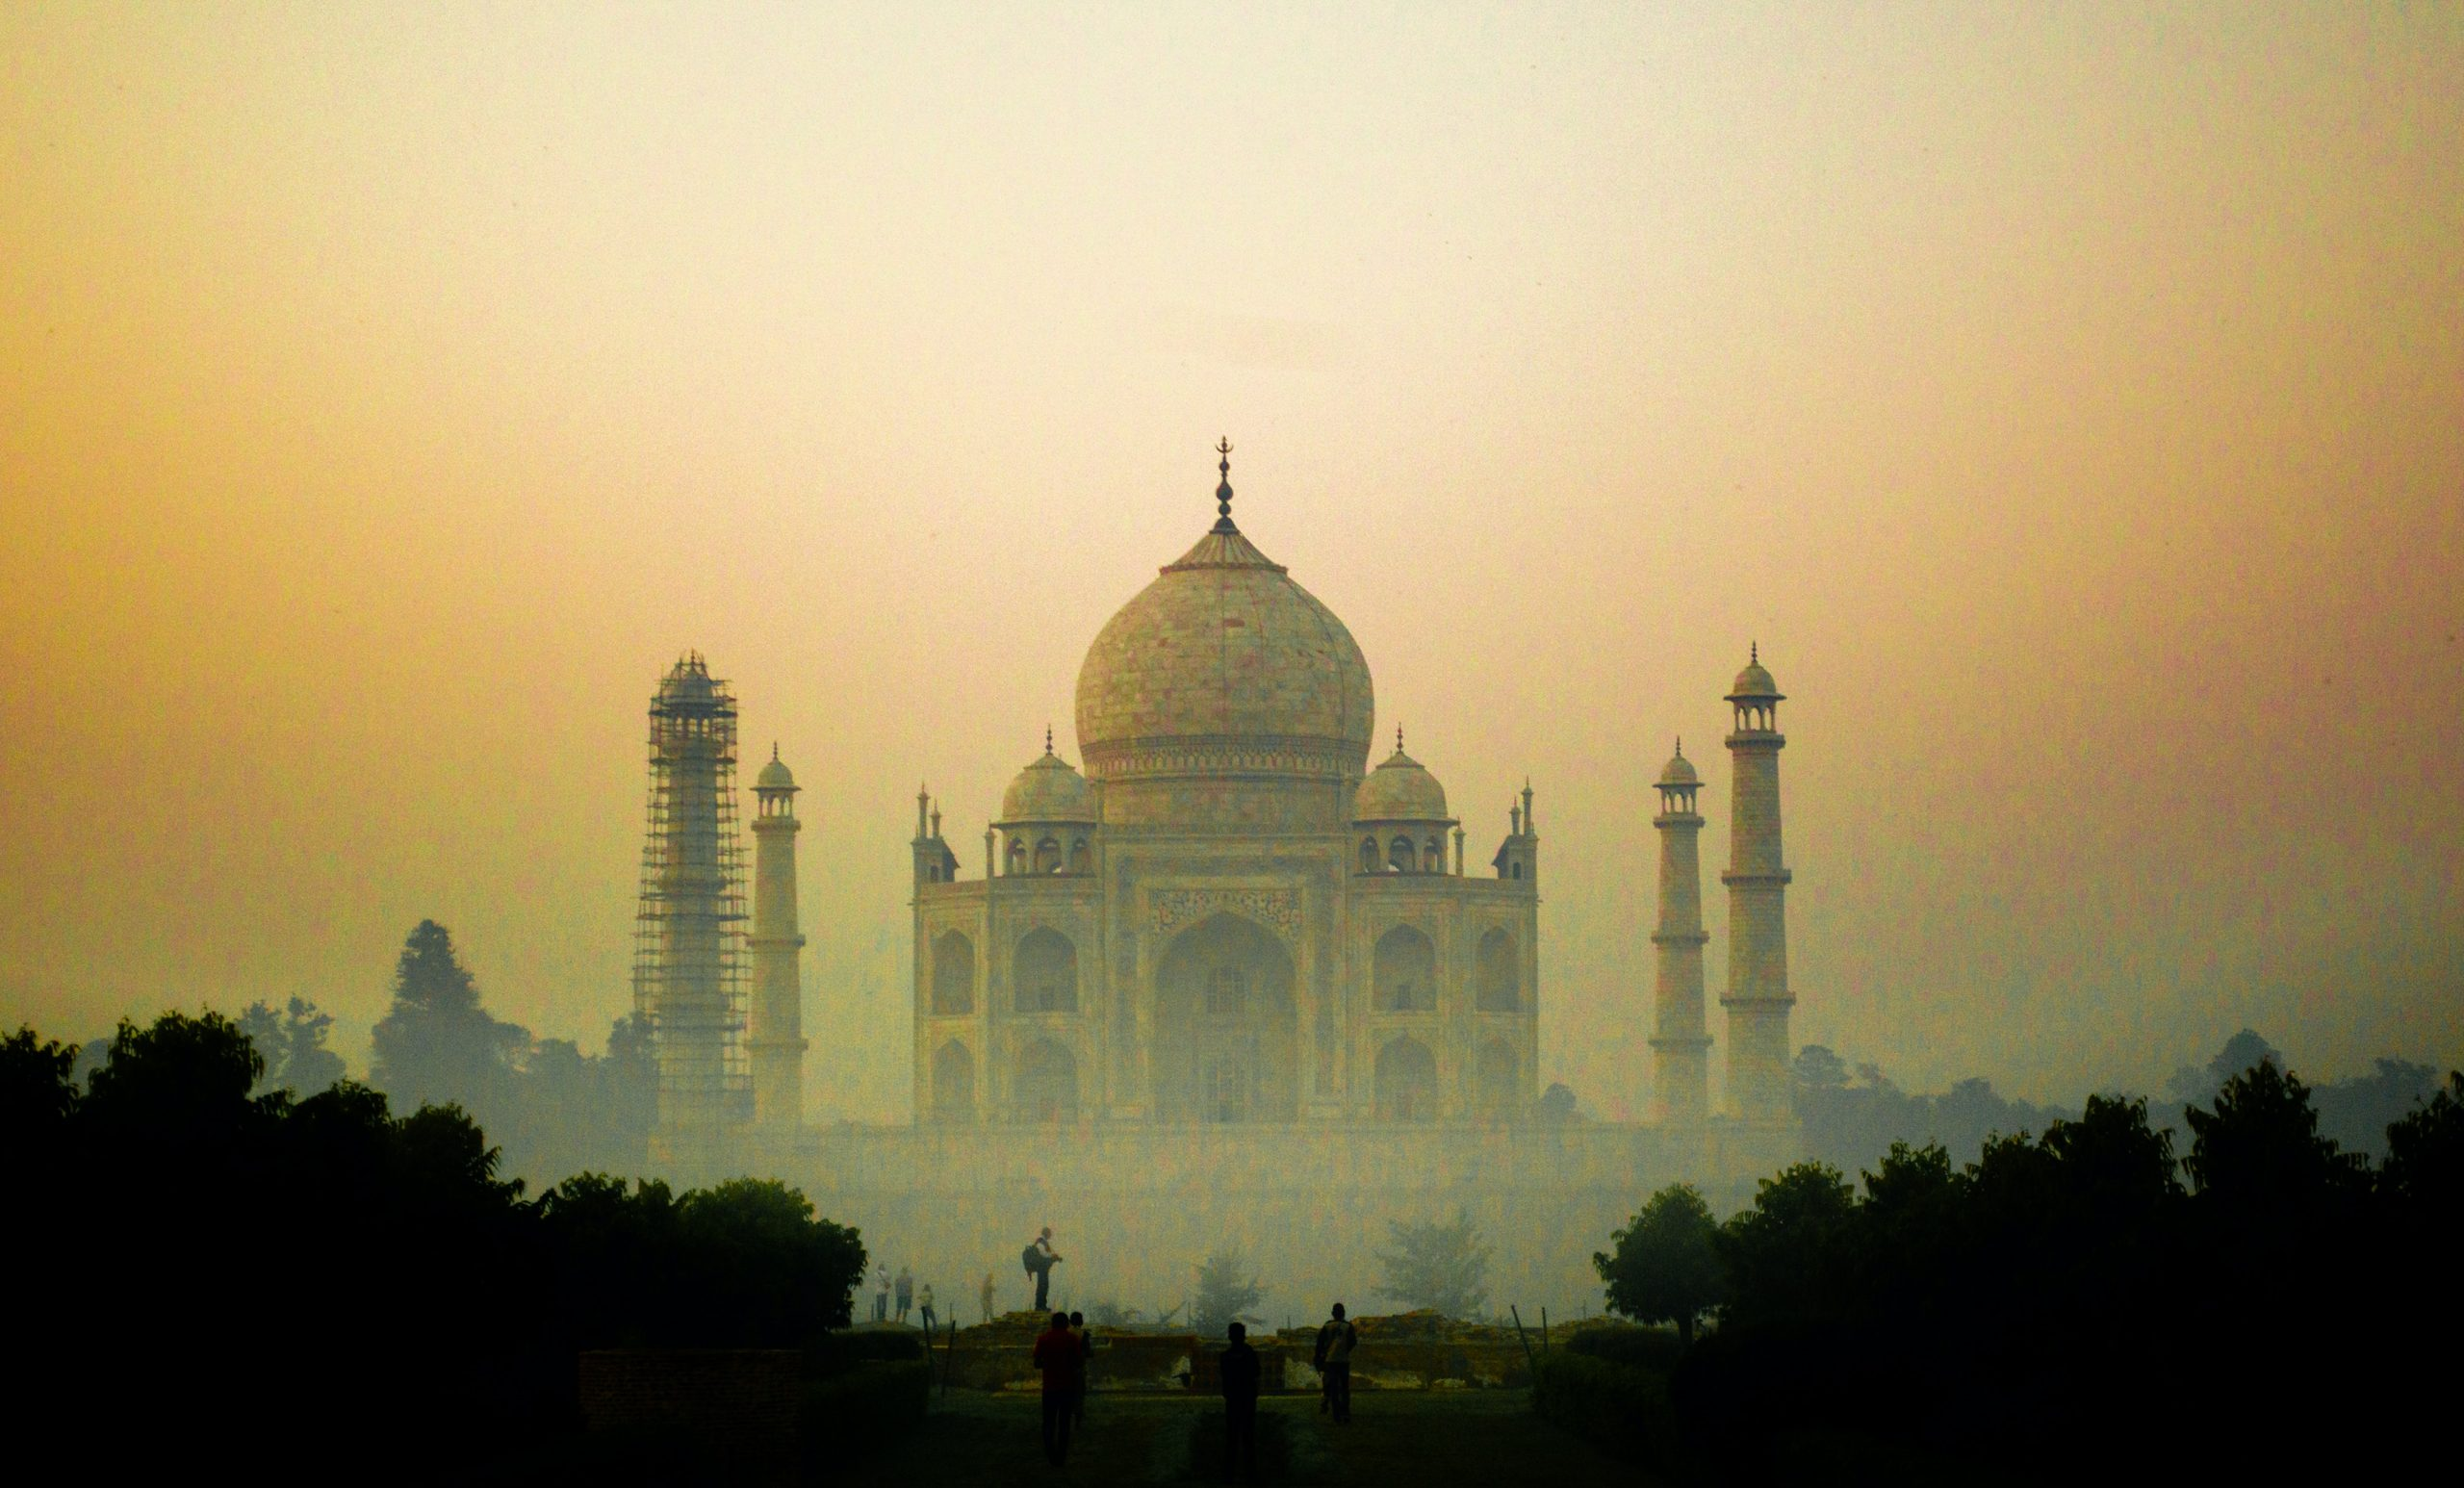 What are the top 5 tourist destinations in India?